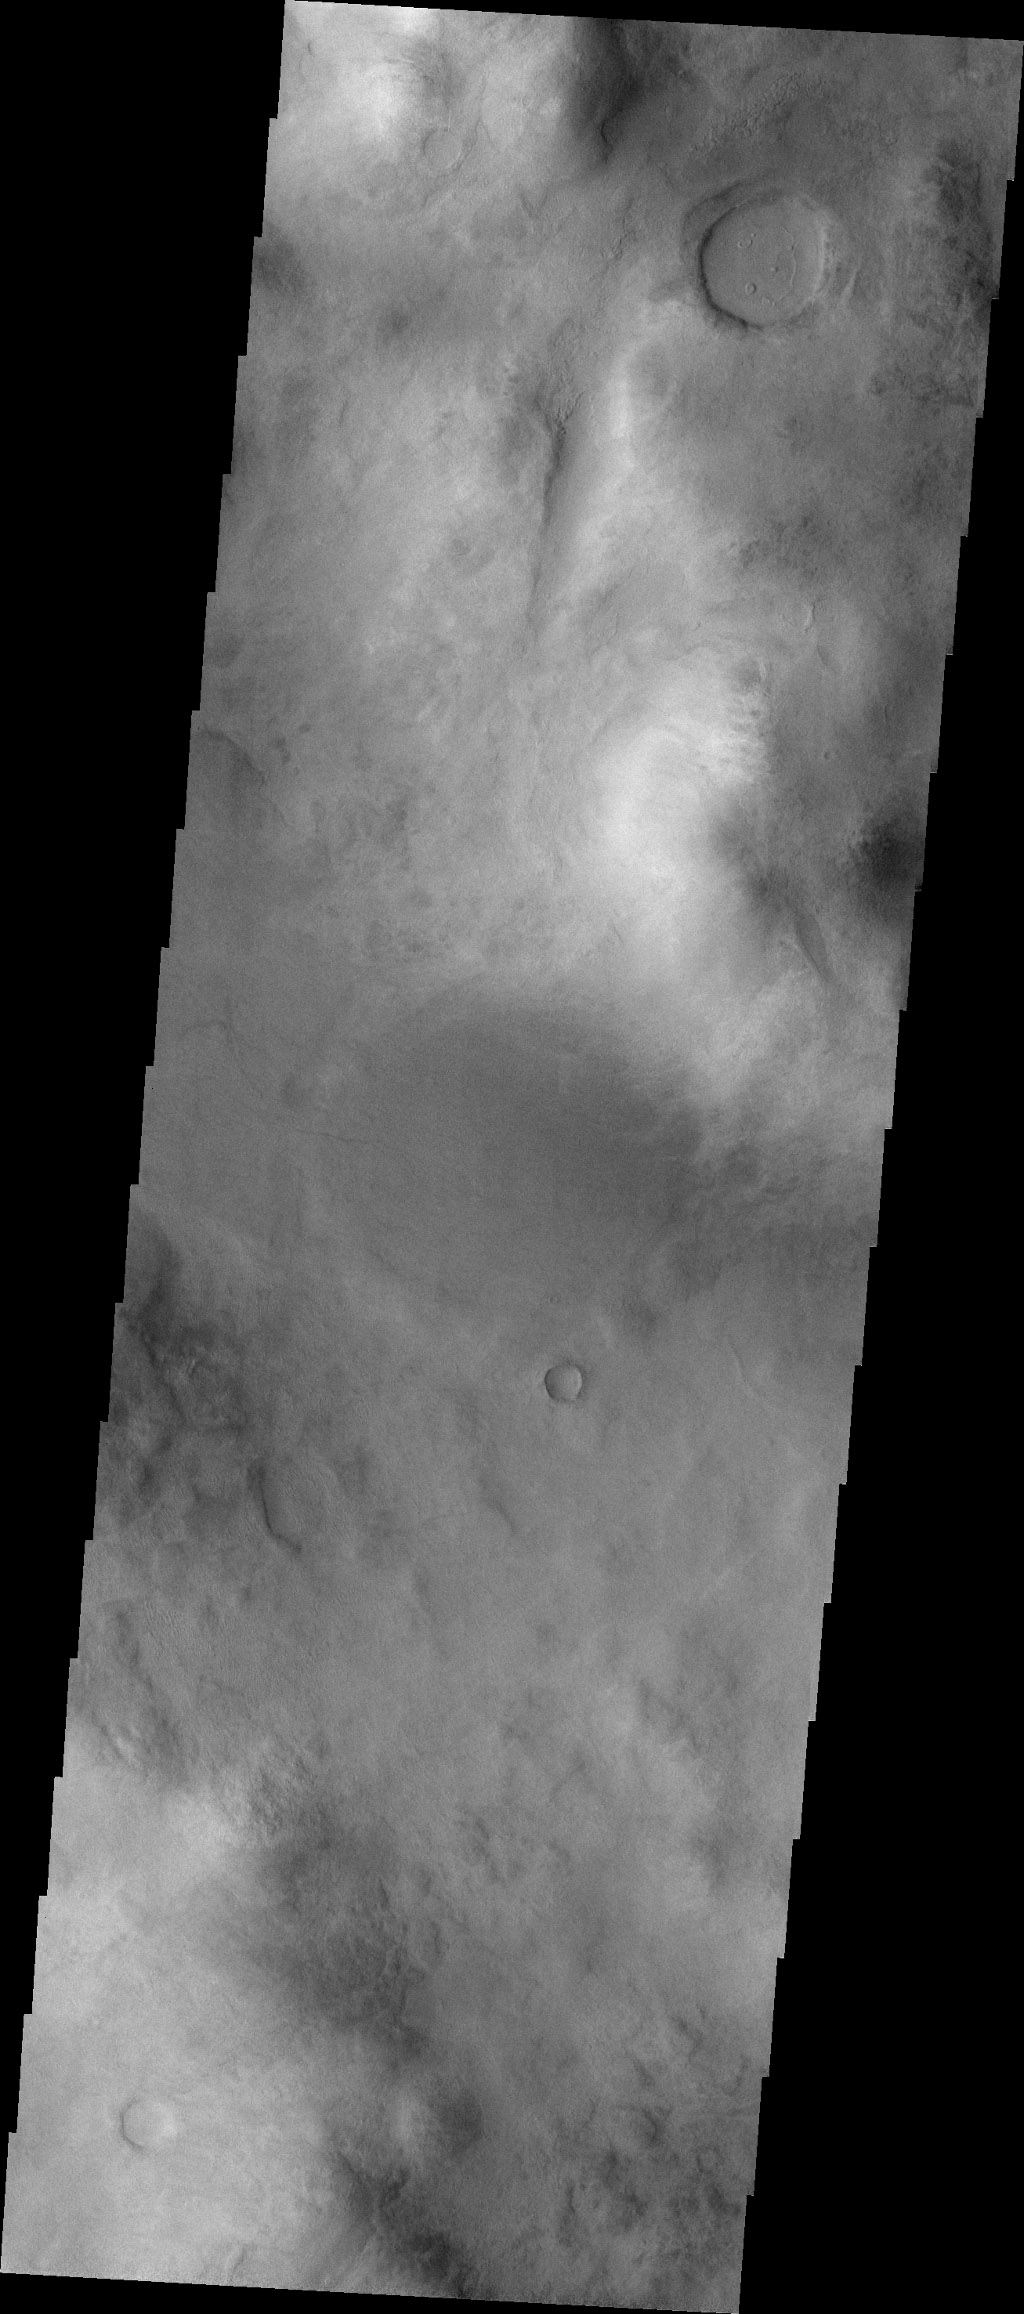 Do you see what I see this image from NASA's Mars Odyssey spacecraft? Turn your head to the left and look at the crater at the top of the image - a smiley face will be gazing at you.